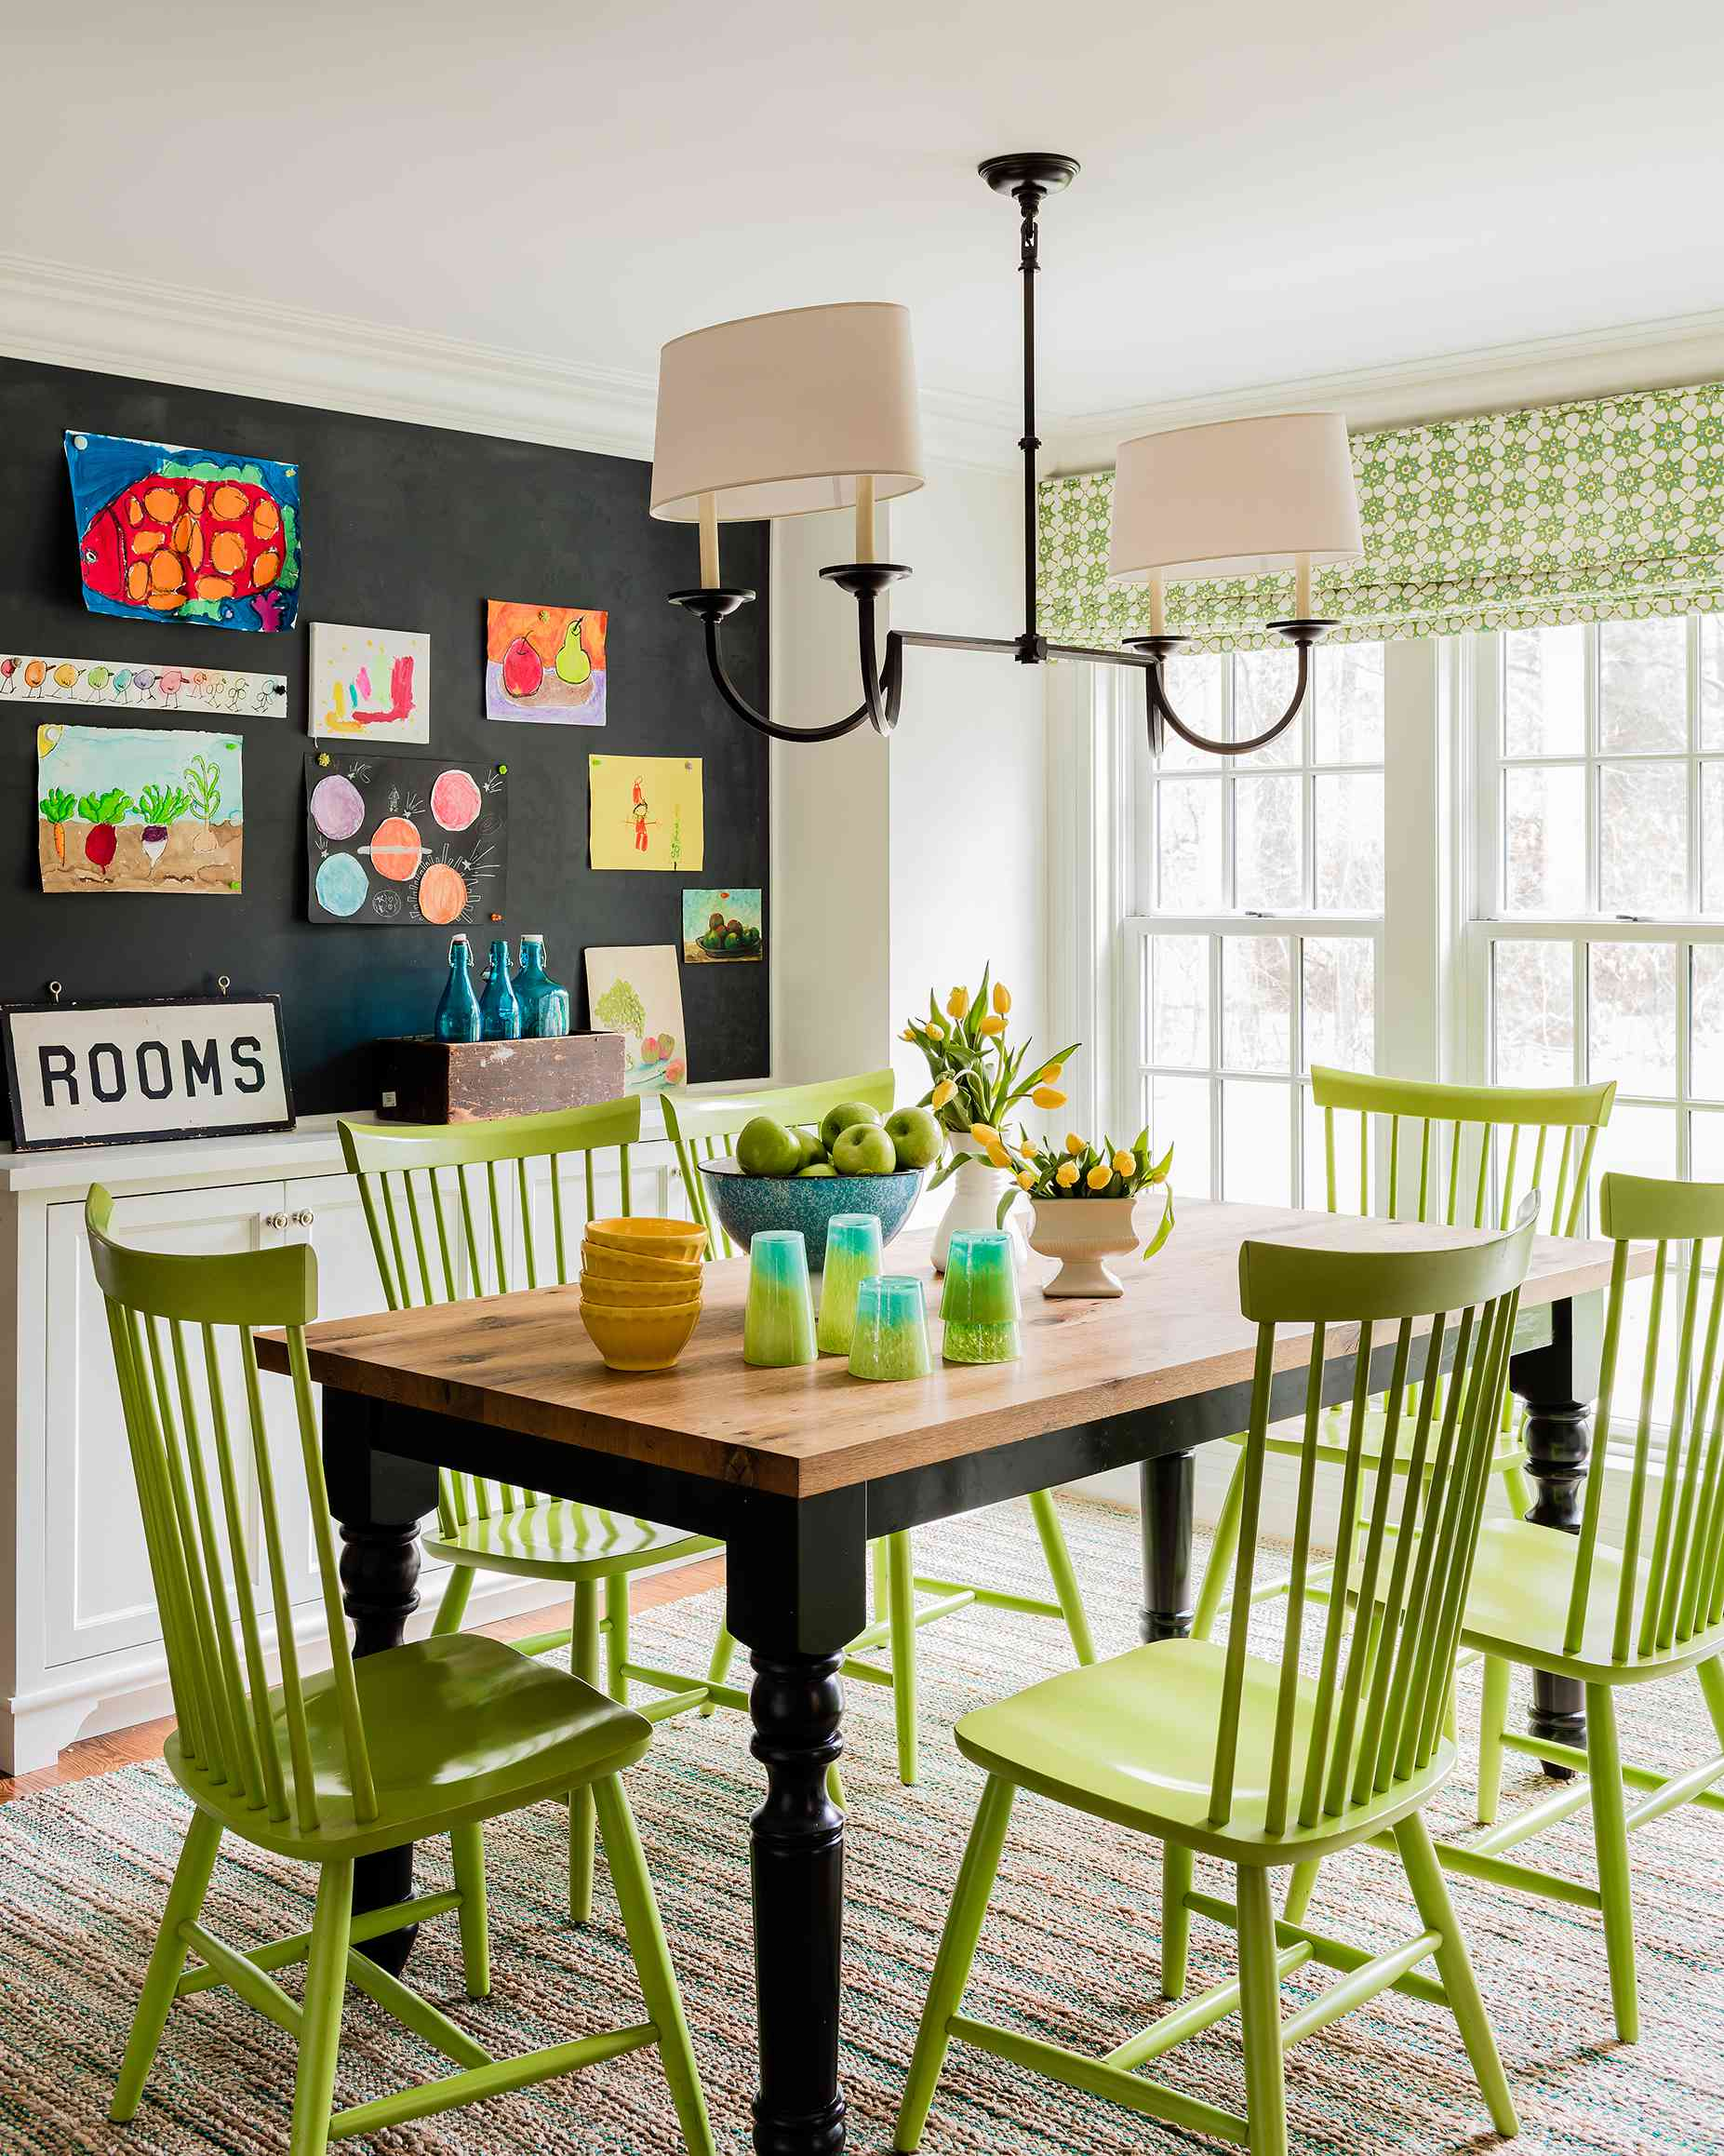 Dining nook with lime green chairs.